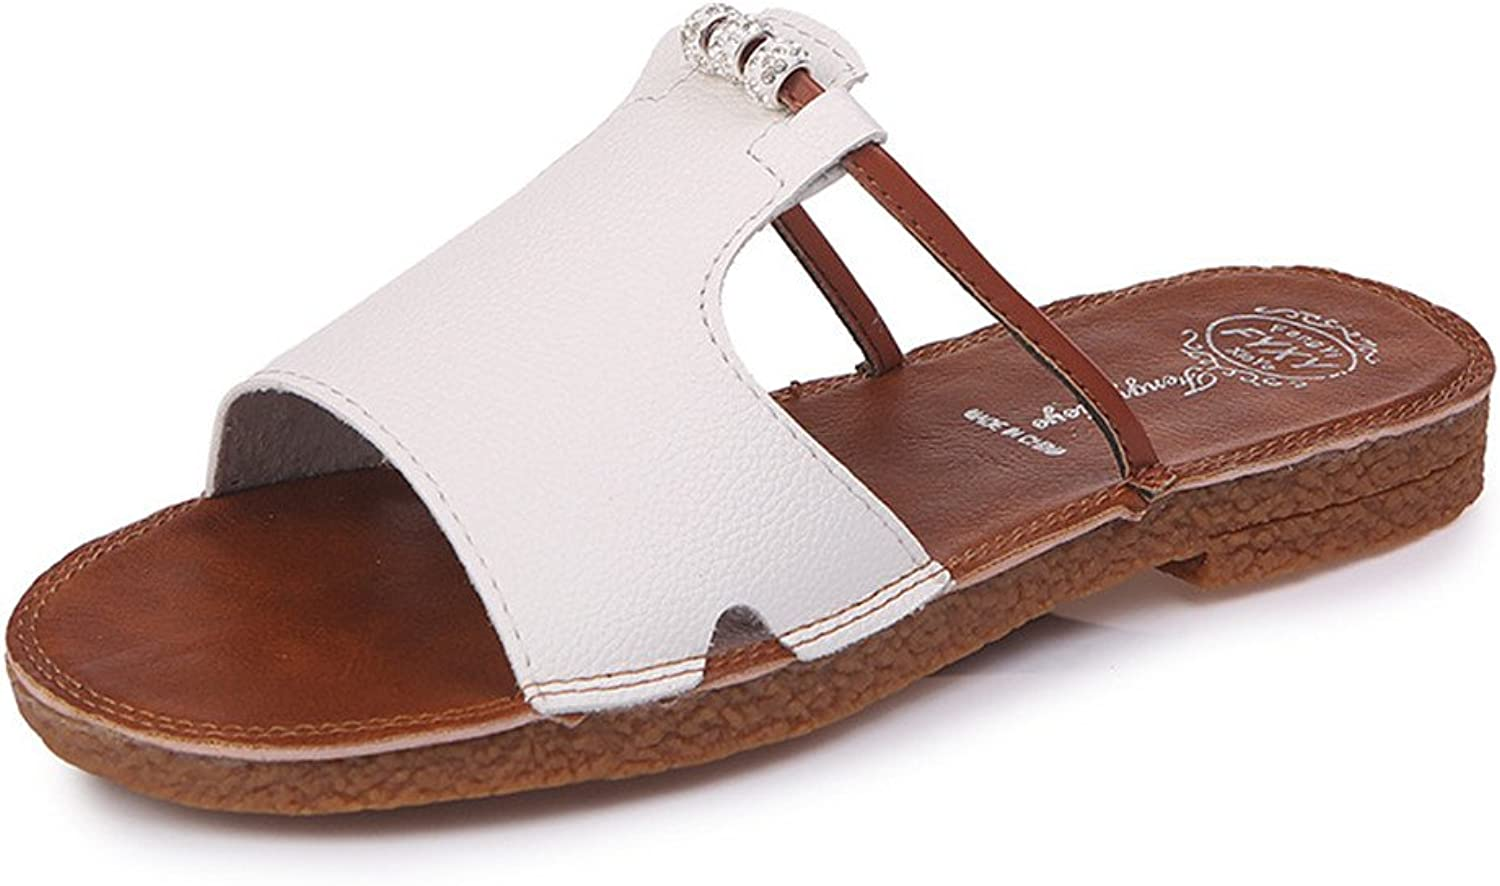 Flat Feet Do Not Tired Feet Pregnant Women Drag The Word Flip-Flops Casual shoes (color   White, Size   38)